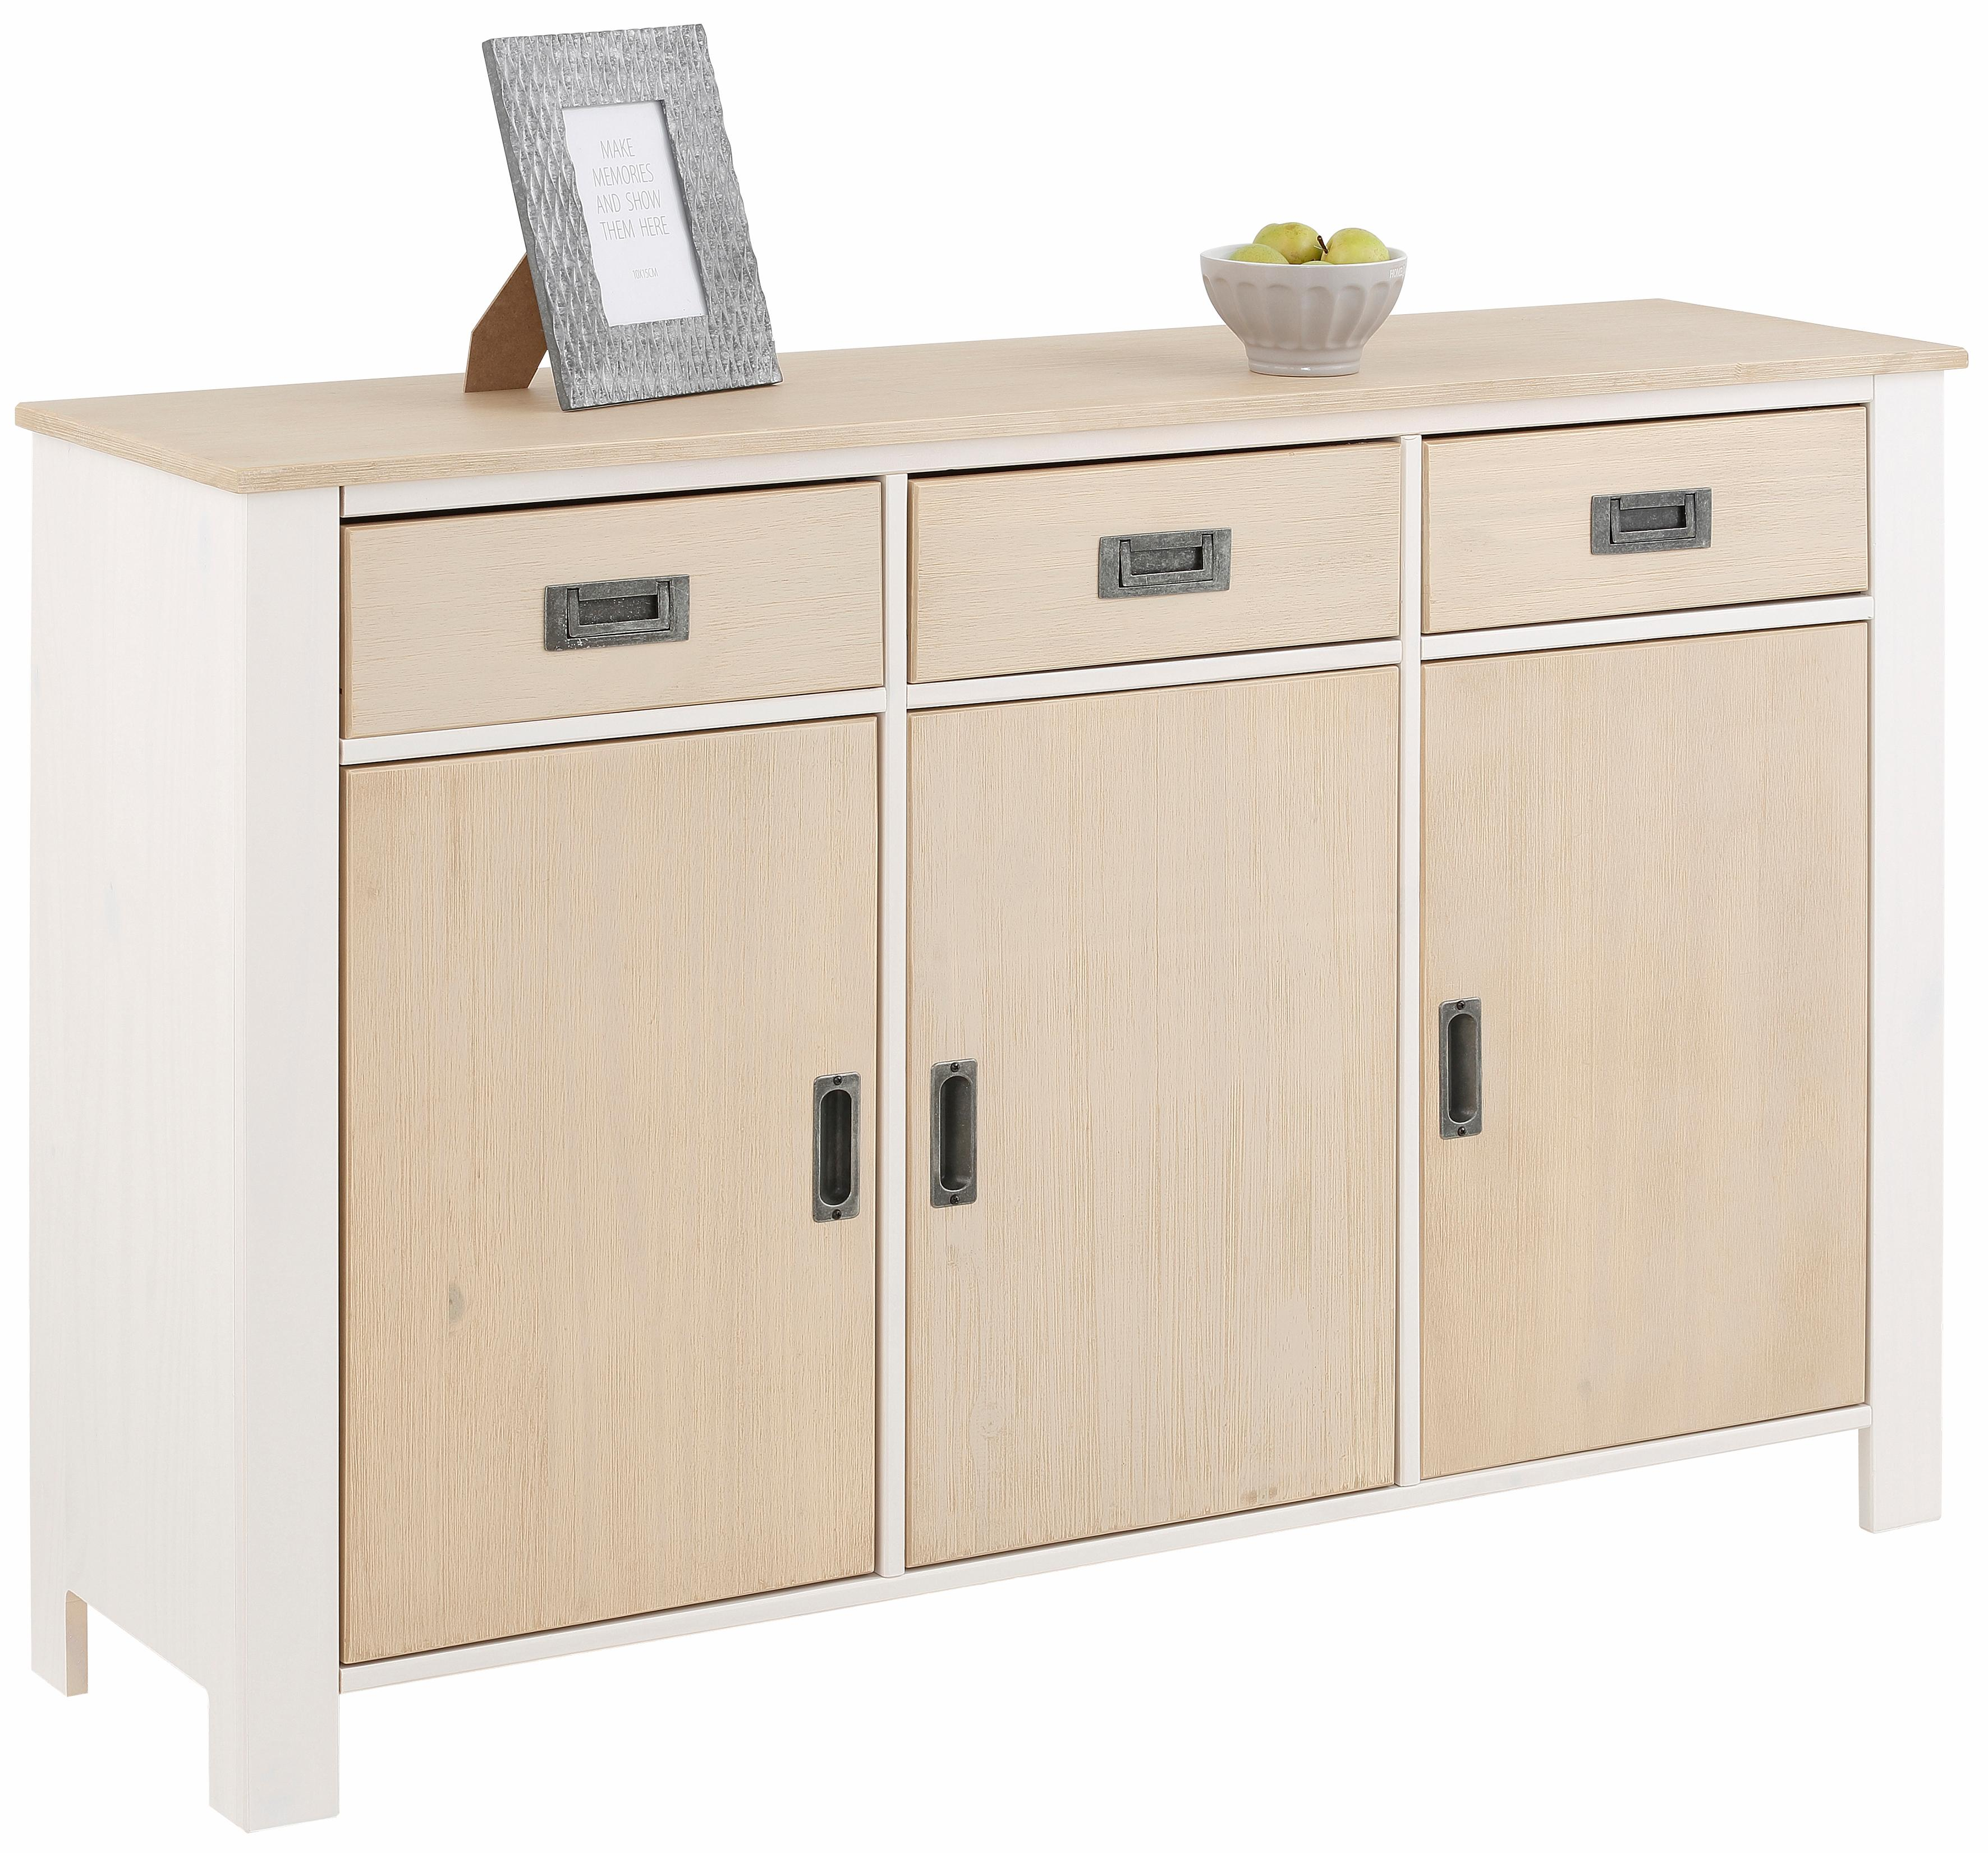 Home affaire Sideboard Madagaskar Breite 125 cm